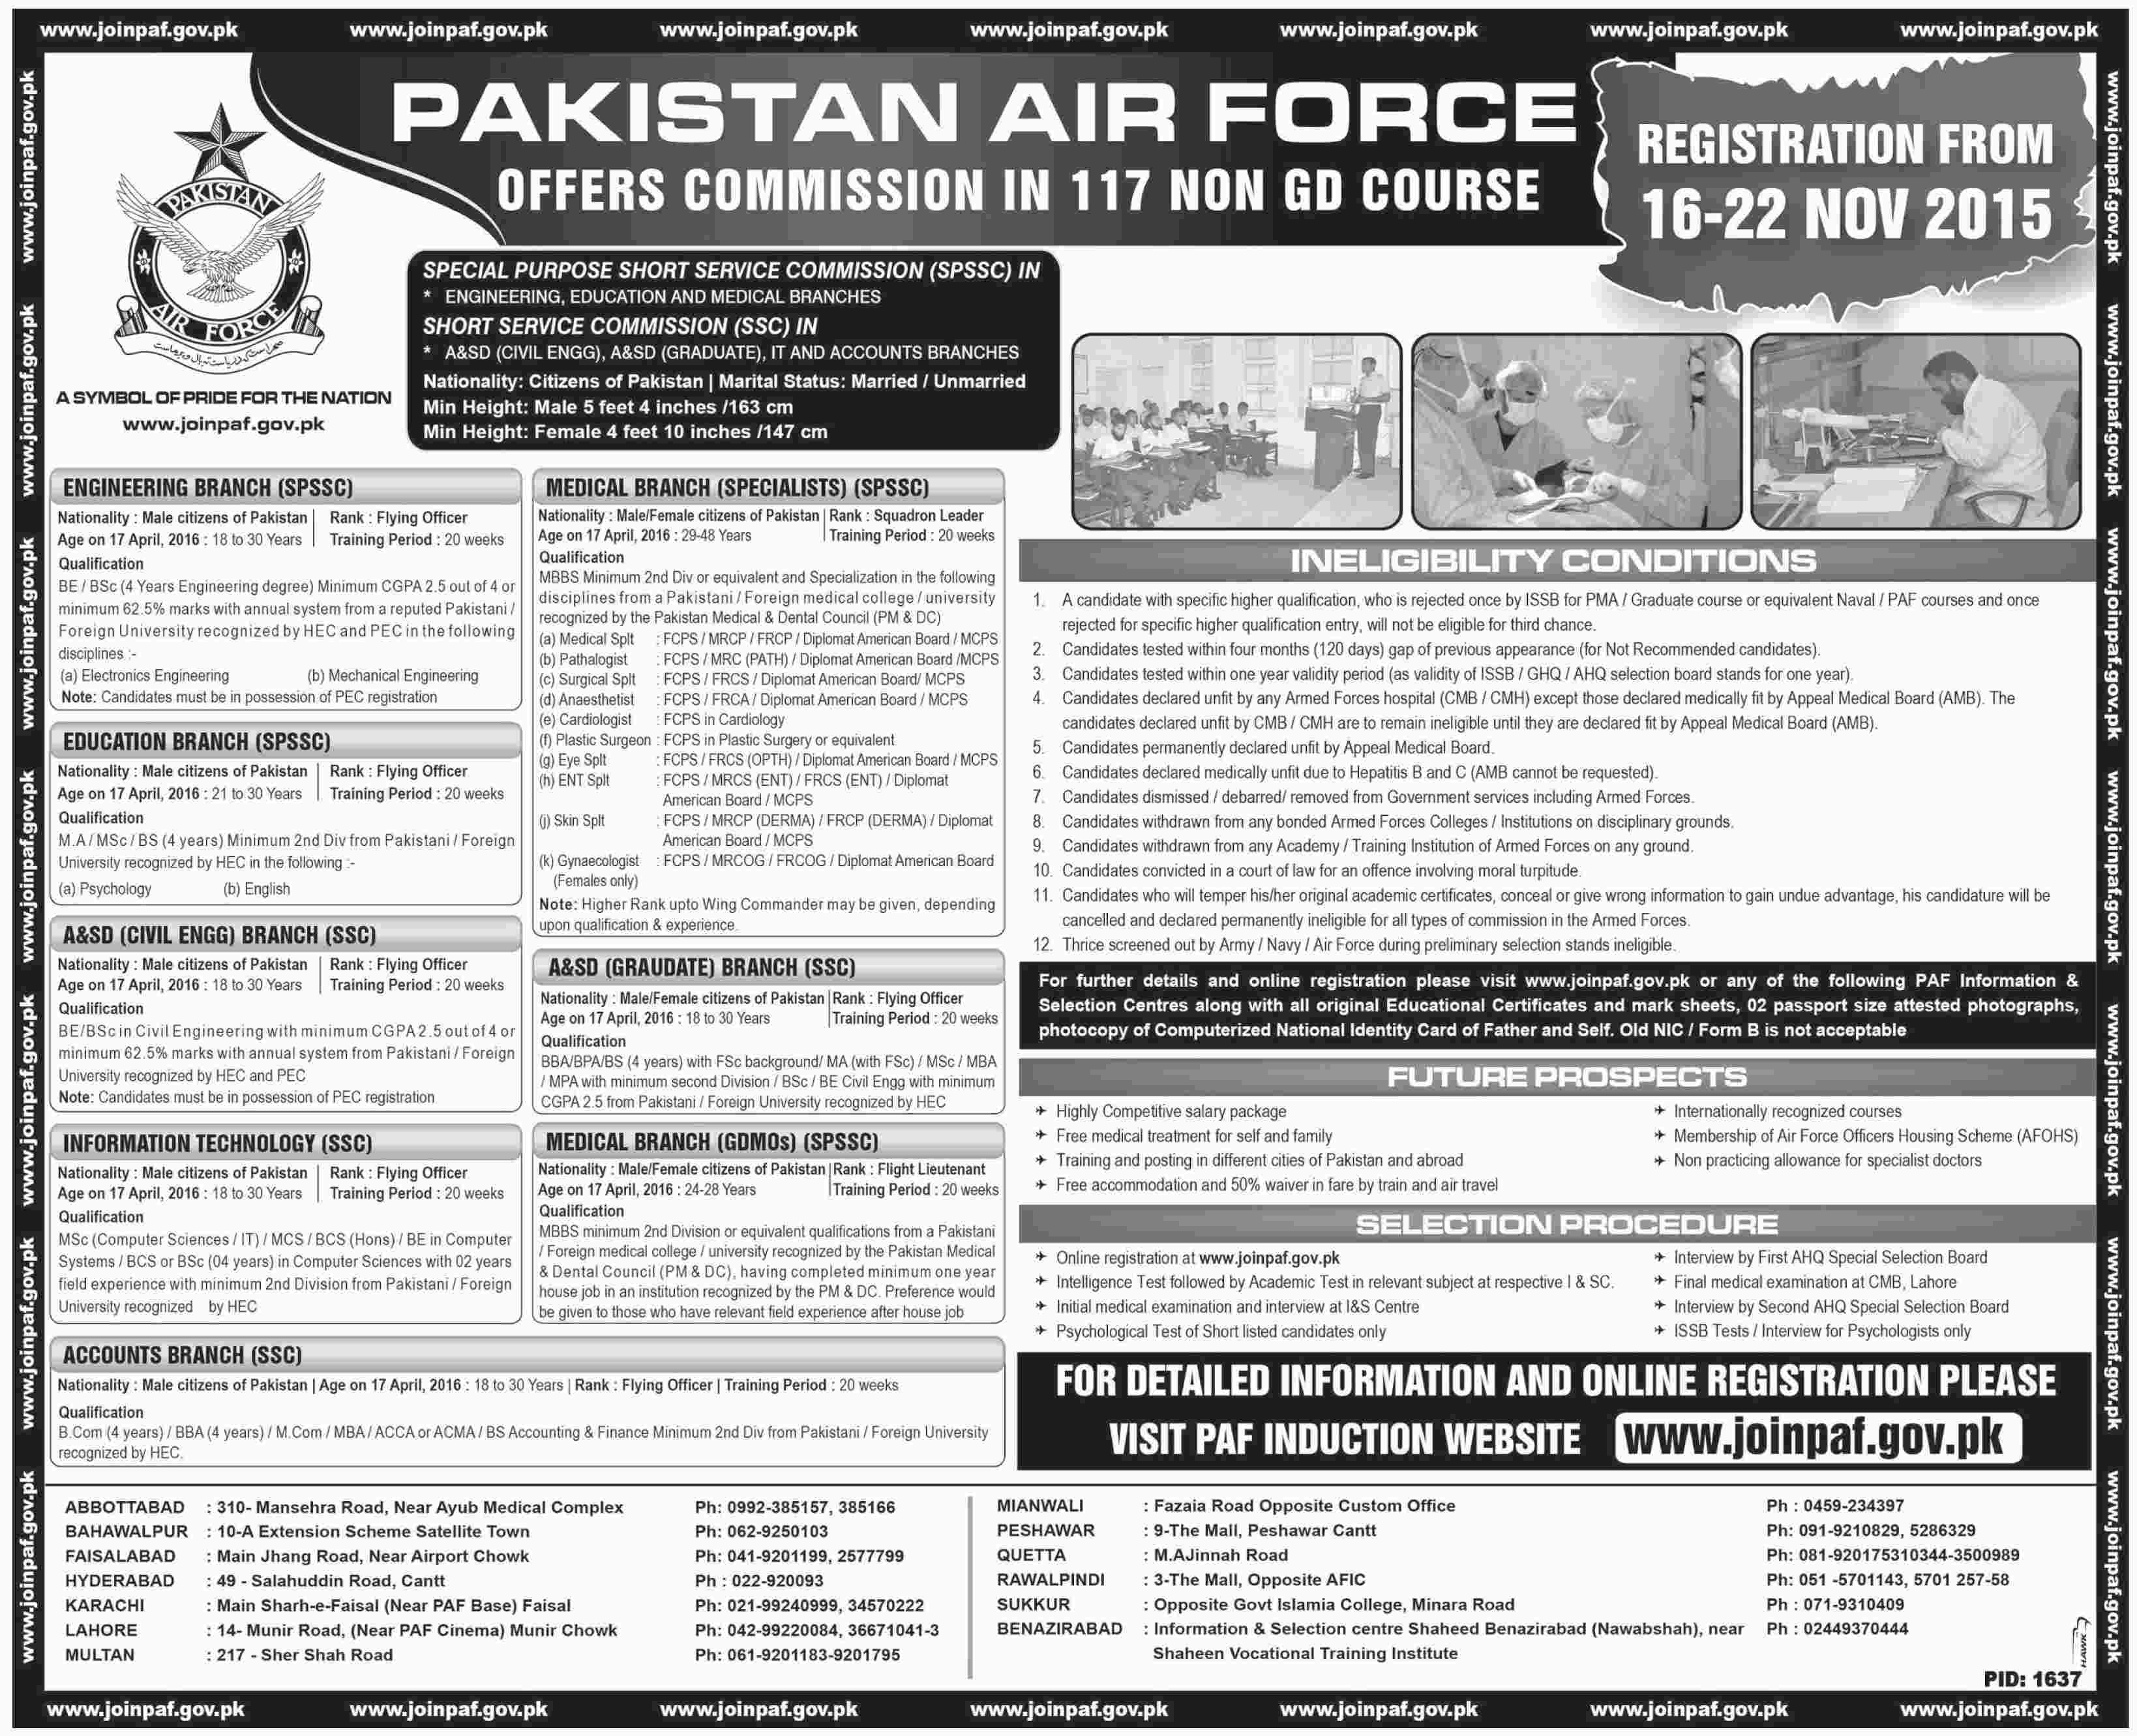 Pakistan Air Force PAF Officers Commissioned Jobs 2015 In